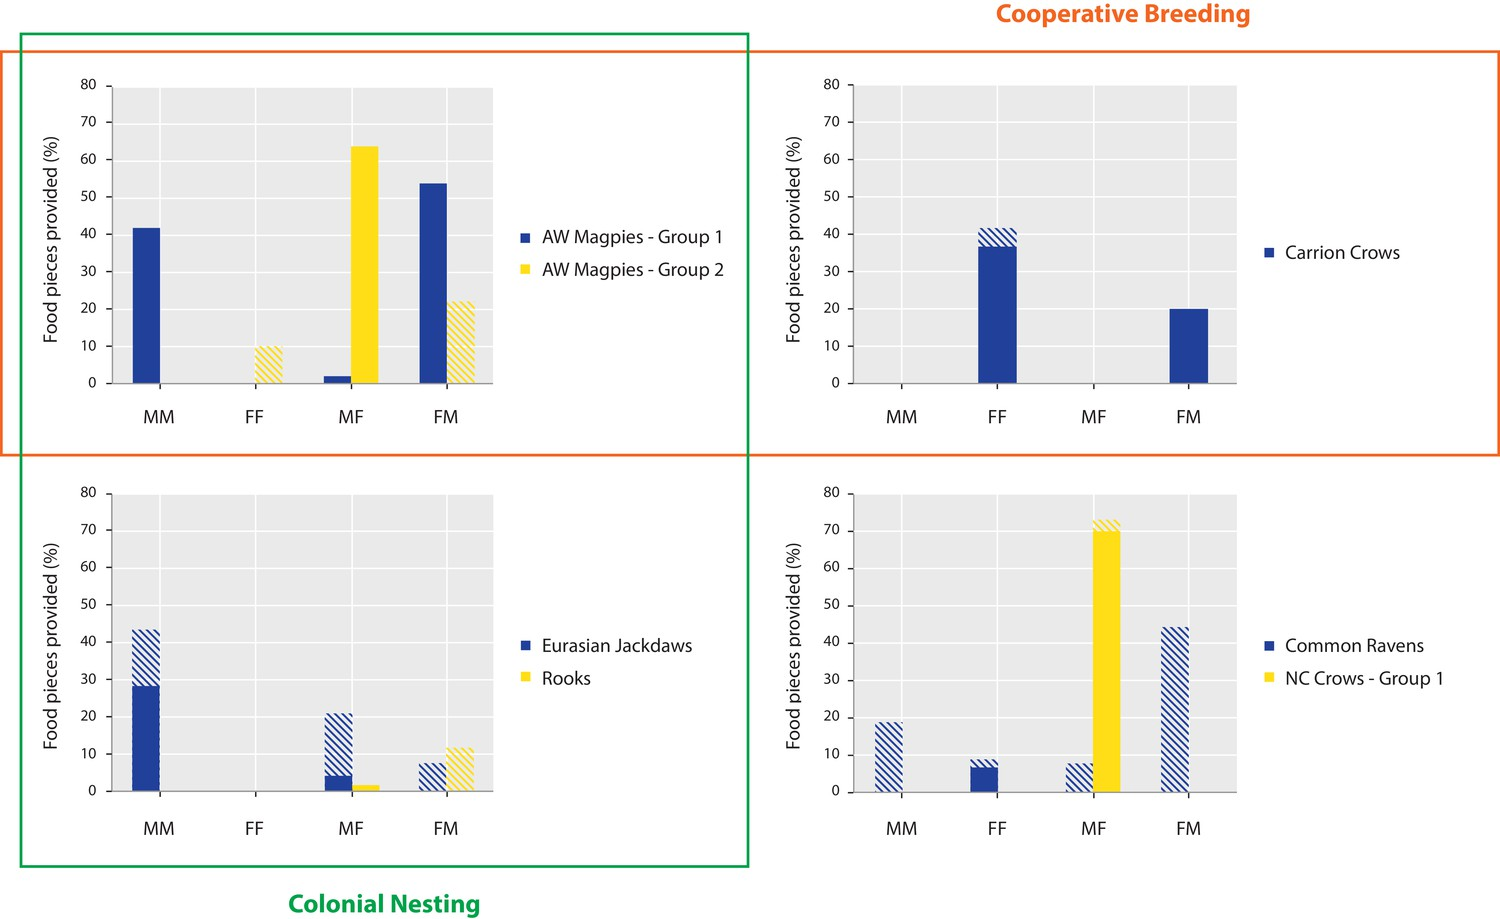 Sex-specific effects of cooperative breeding and colonial nesting ...